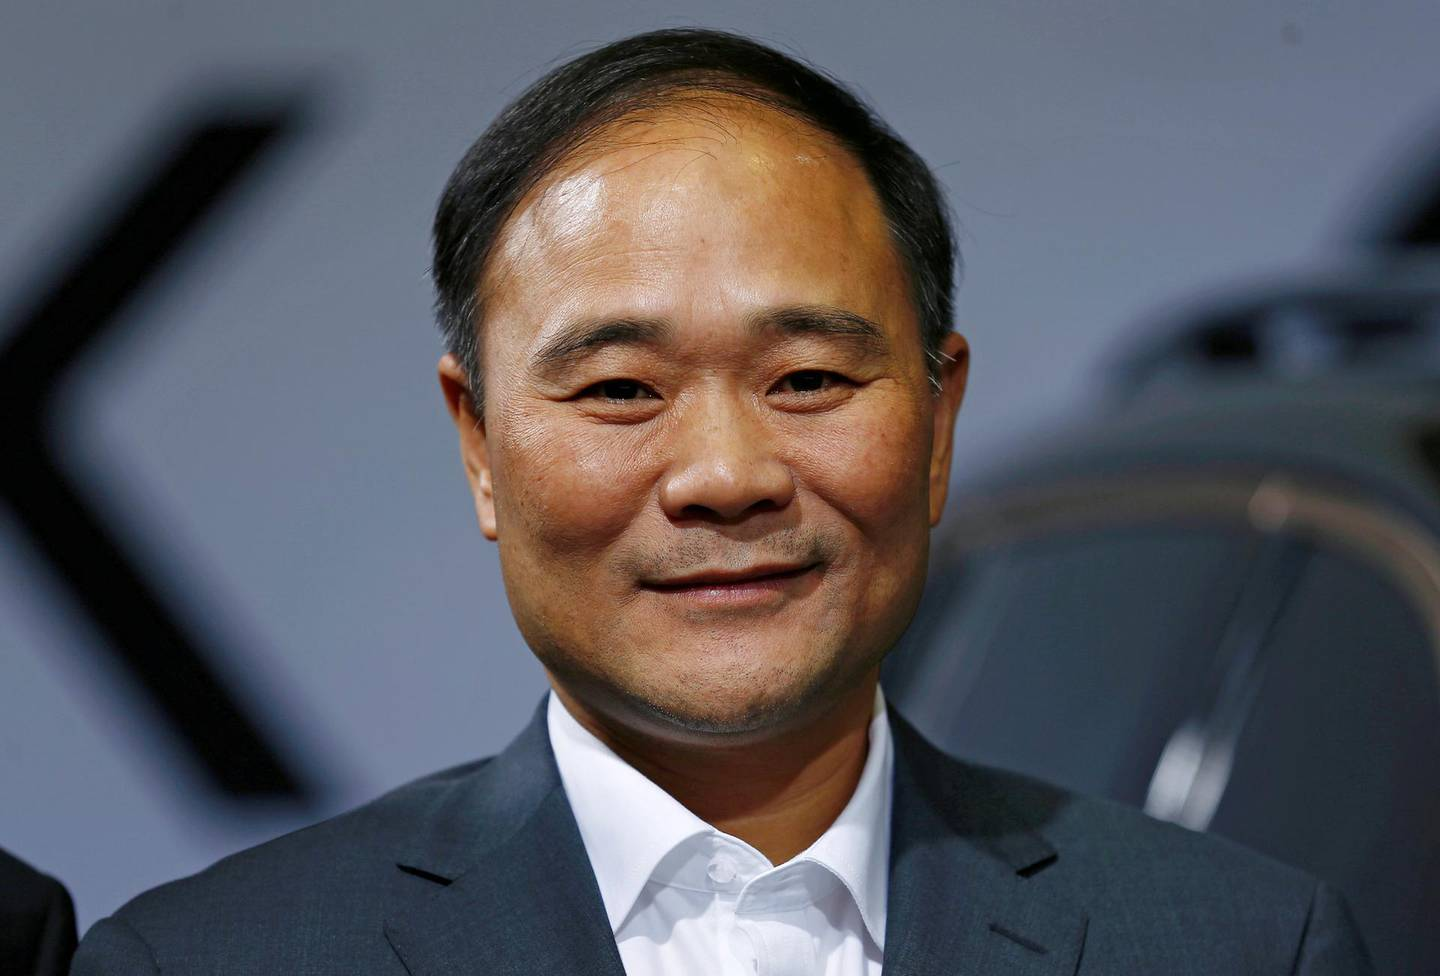 FILE PHOTO: Geely's founder and chairman, Li Shufu, poses for a picture during an event in Berlin, Germany, October 20, 2016. REUTERS/Hannibal Hanschke/File Photo